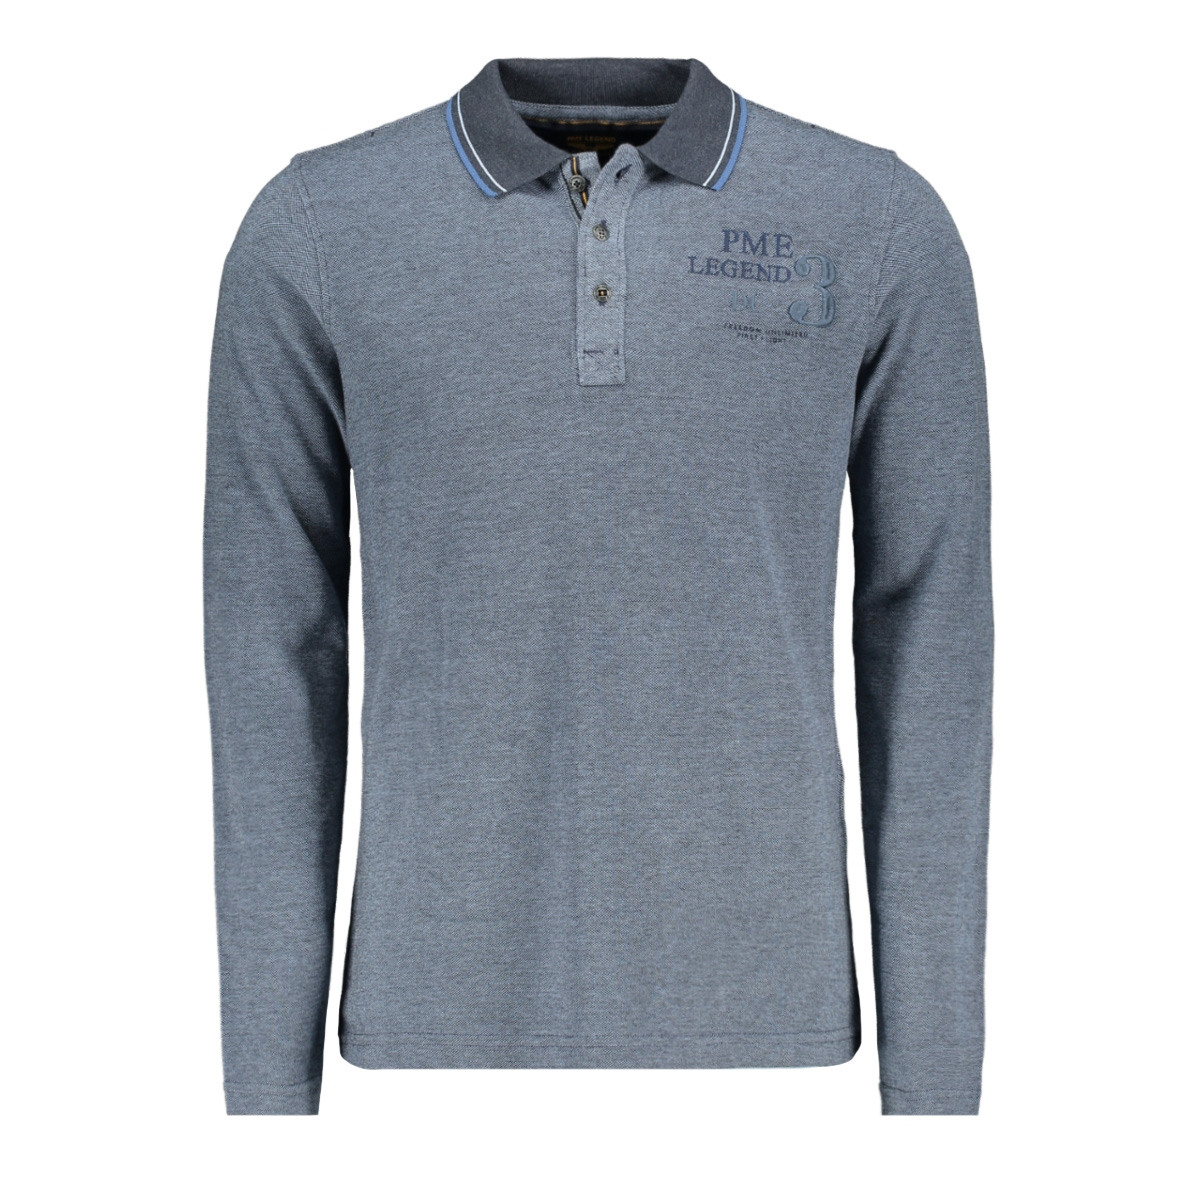 pps188863 pme legend polo 5237